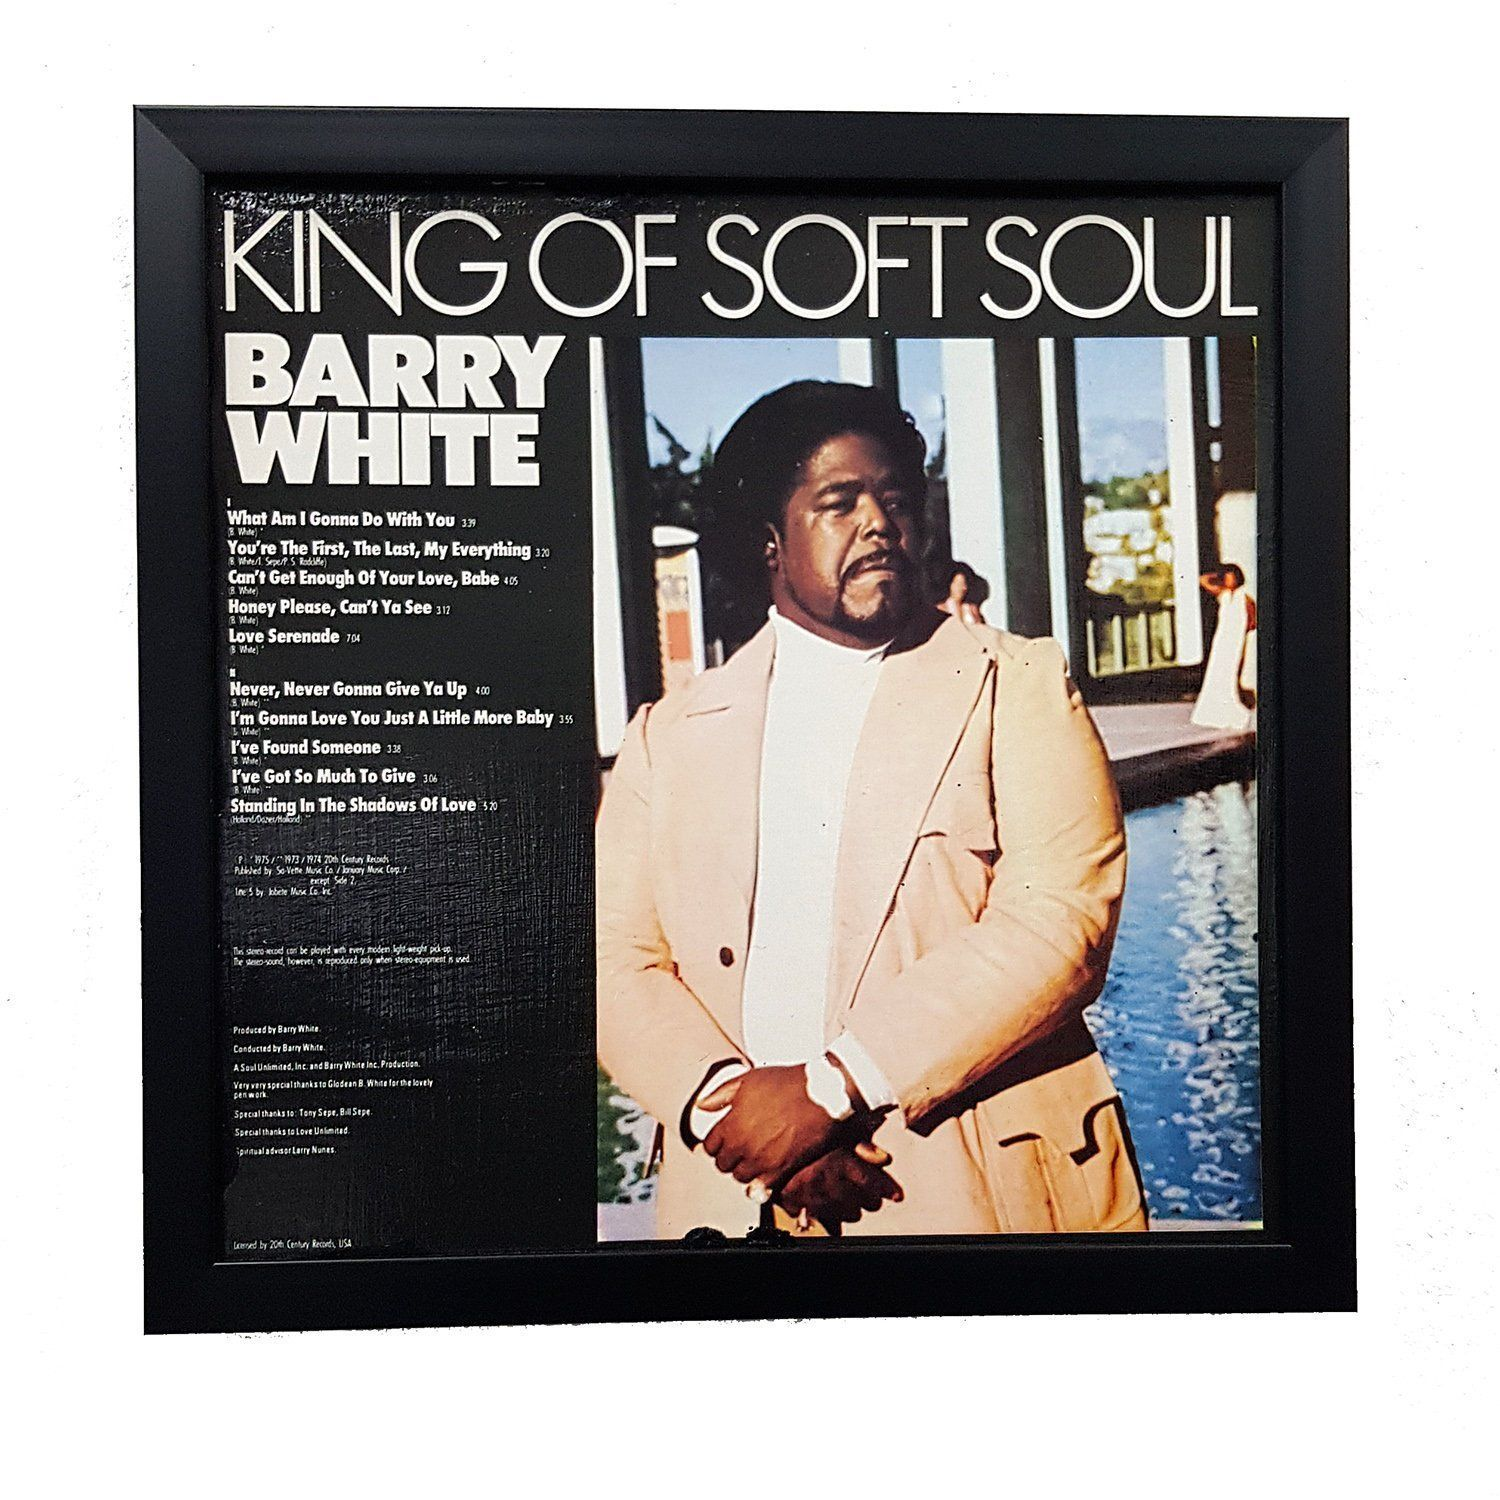 Barry White Album Wall Art Framed Or Clock Album Cover Art Vinyl